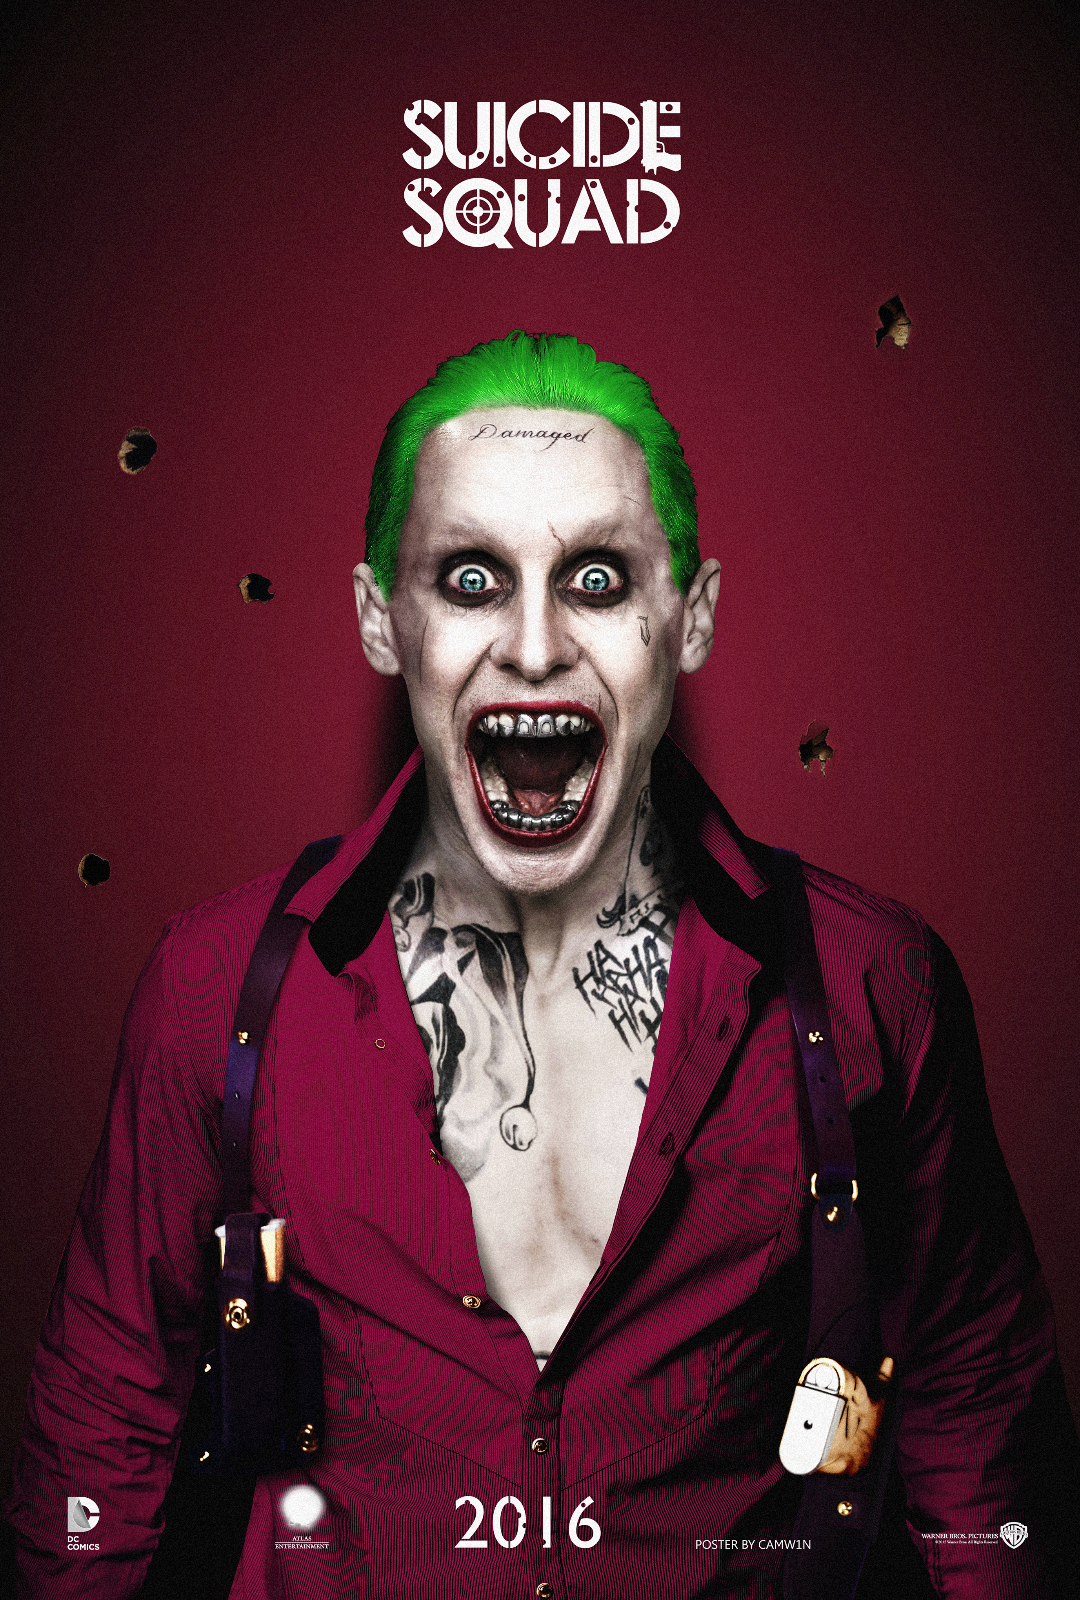 Jared Leto as The Joker #3 - Suicide Squad (2016) by CAMW1N on ...